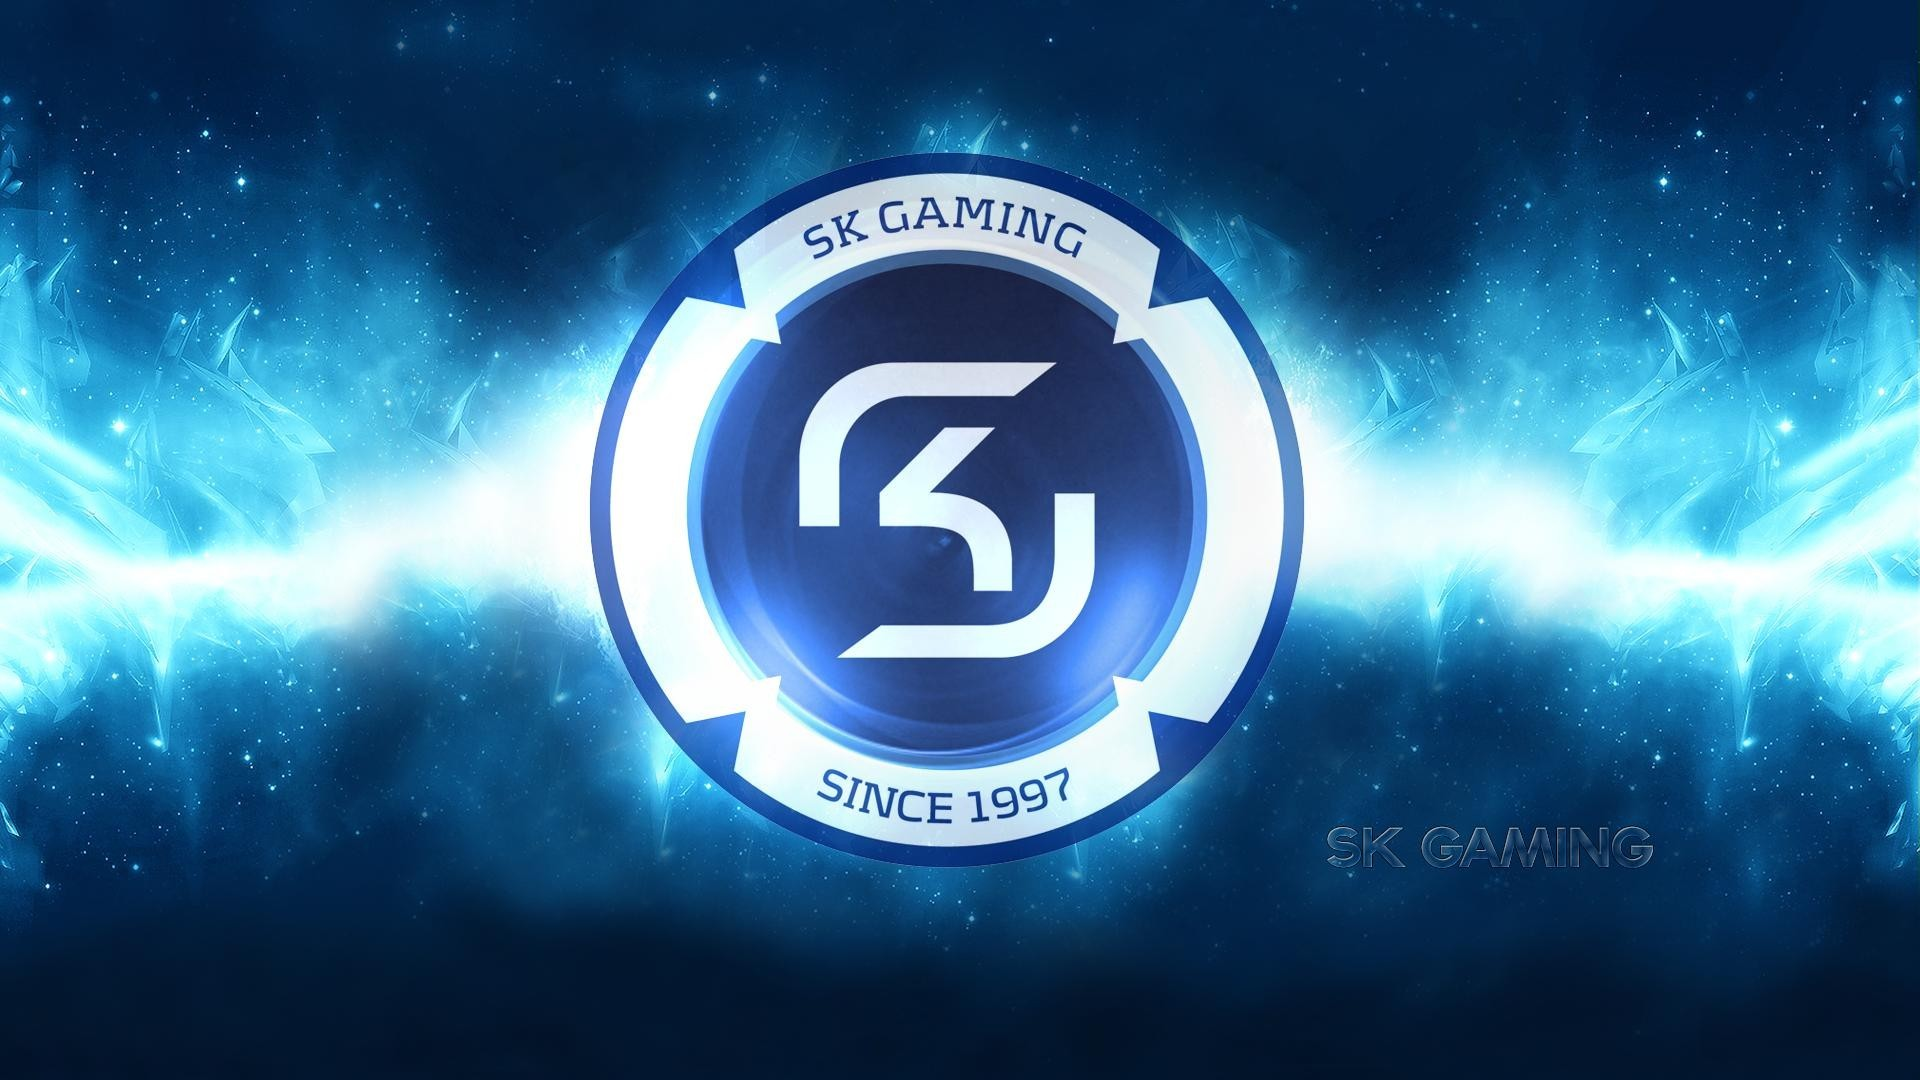 Sk Gaming League Of Legends Team Wallpaper Date Added 07 09 2013 Hits